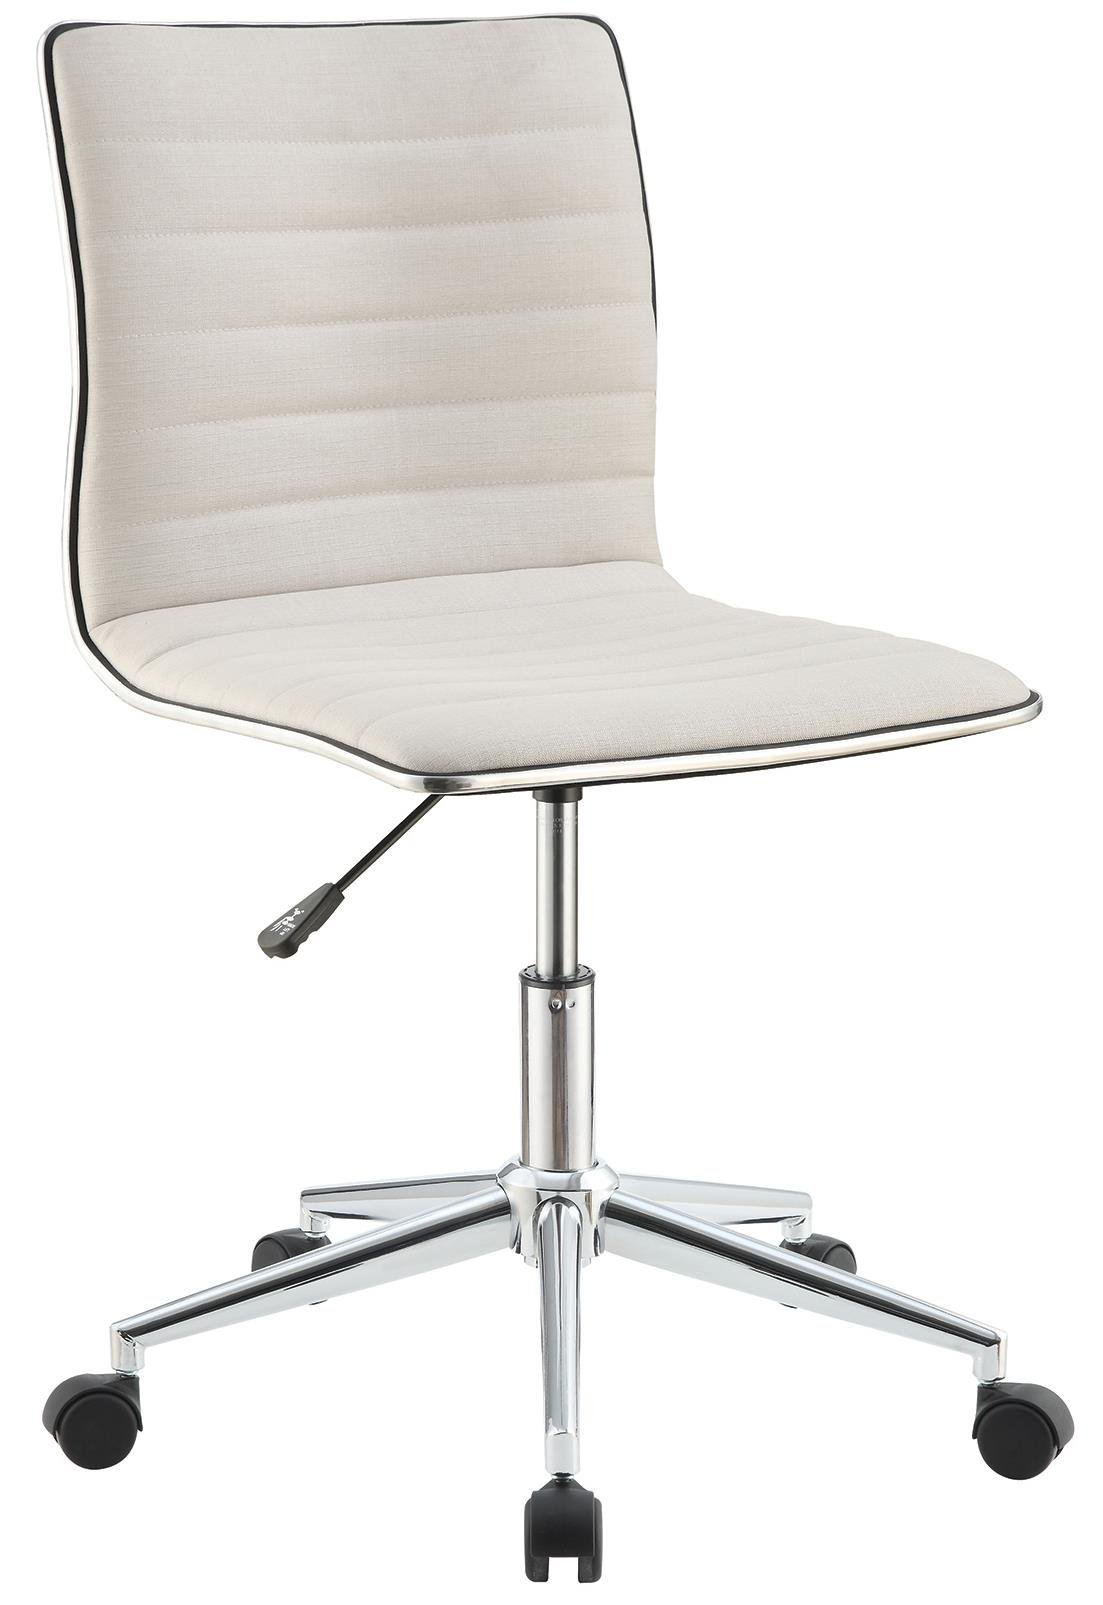 Coaster Modern White Sleek Home Office Chair with Chrome Base